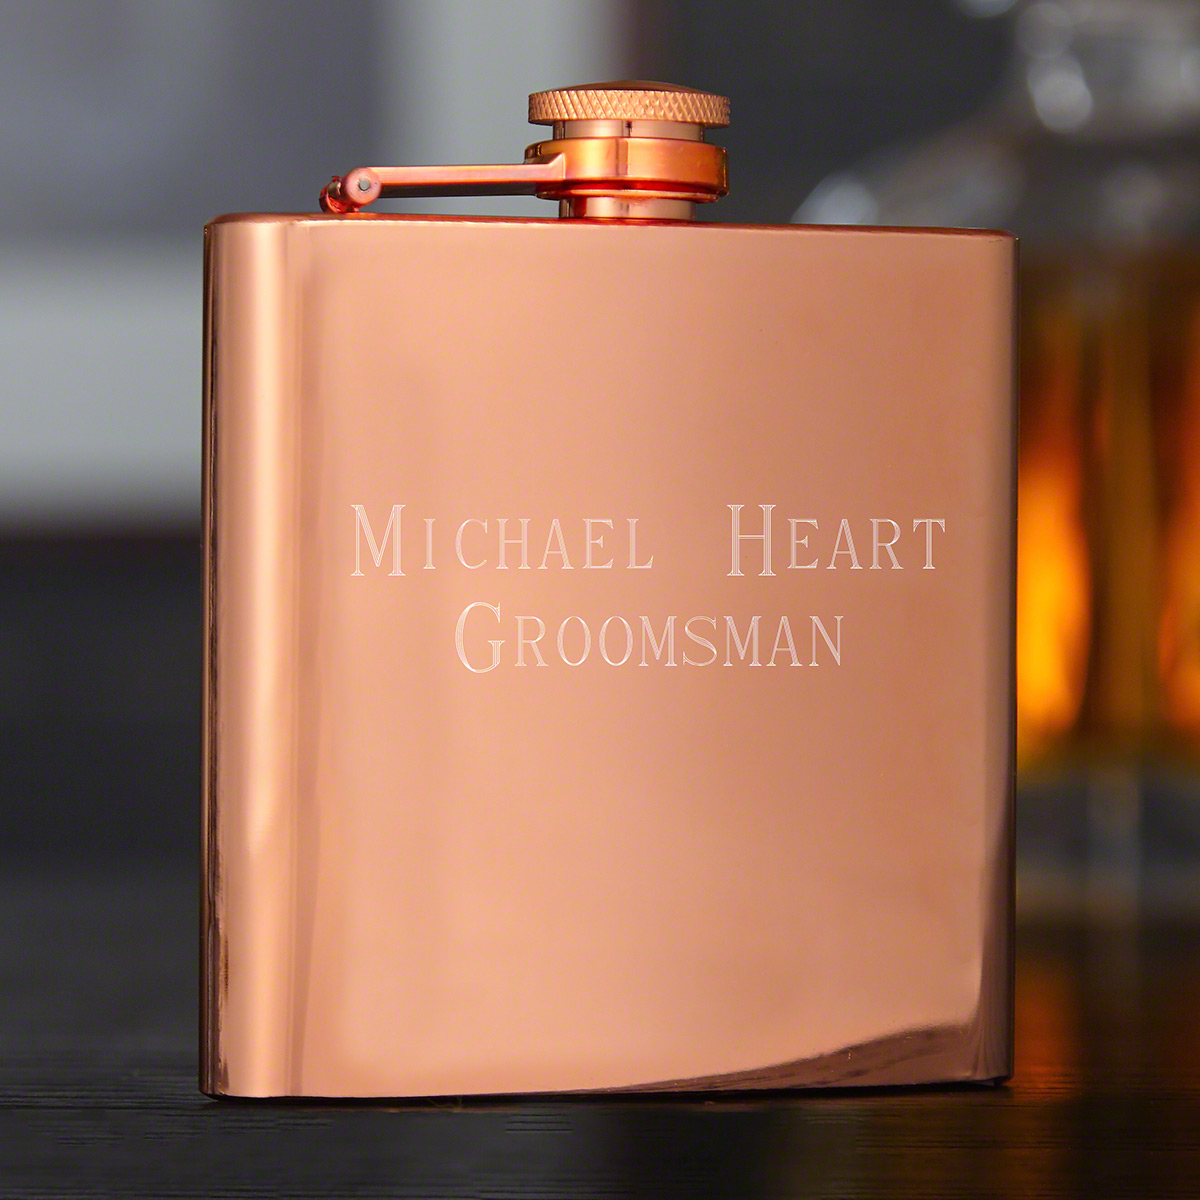 Solomon Engraved Copper-Tone Liquor Flask